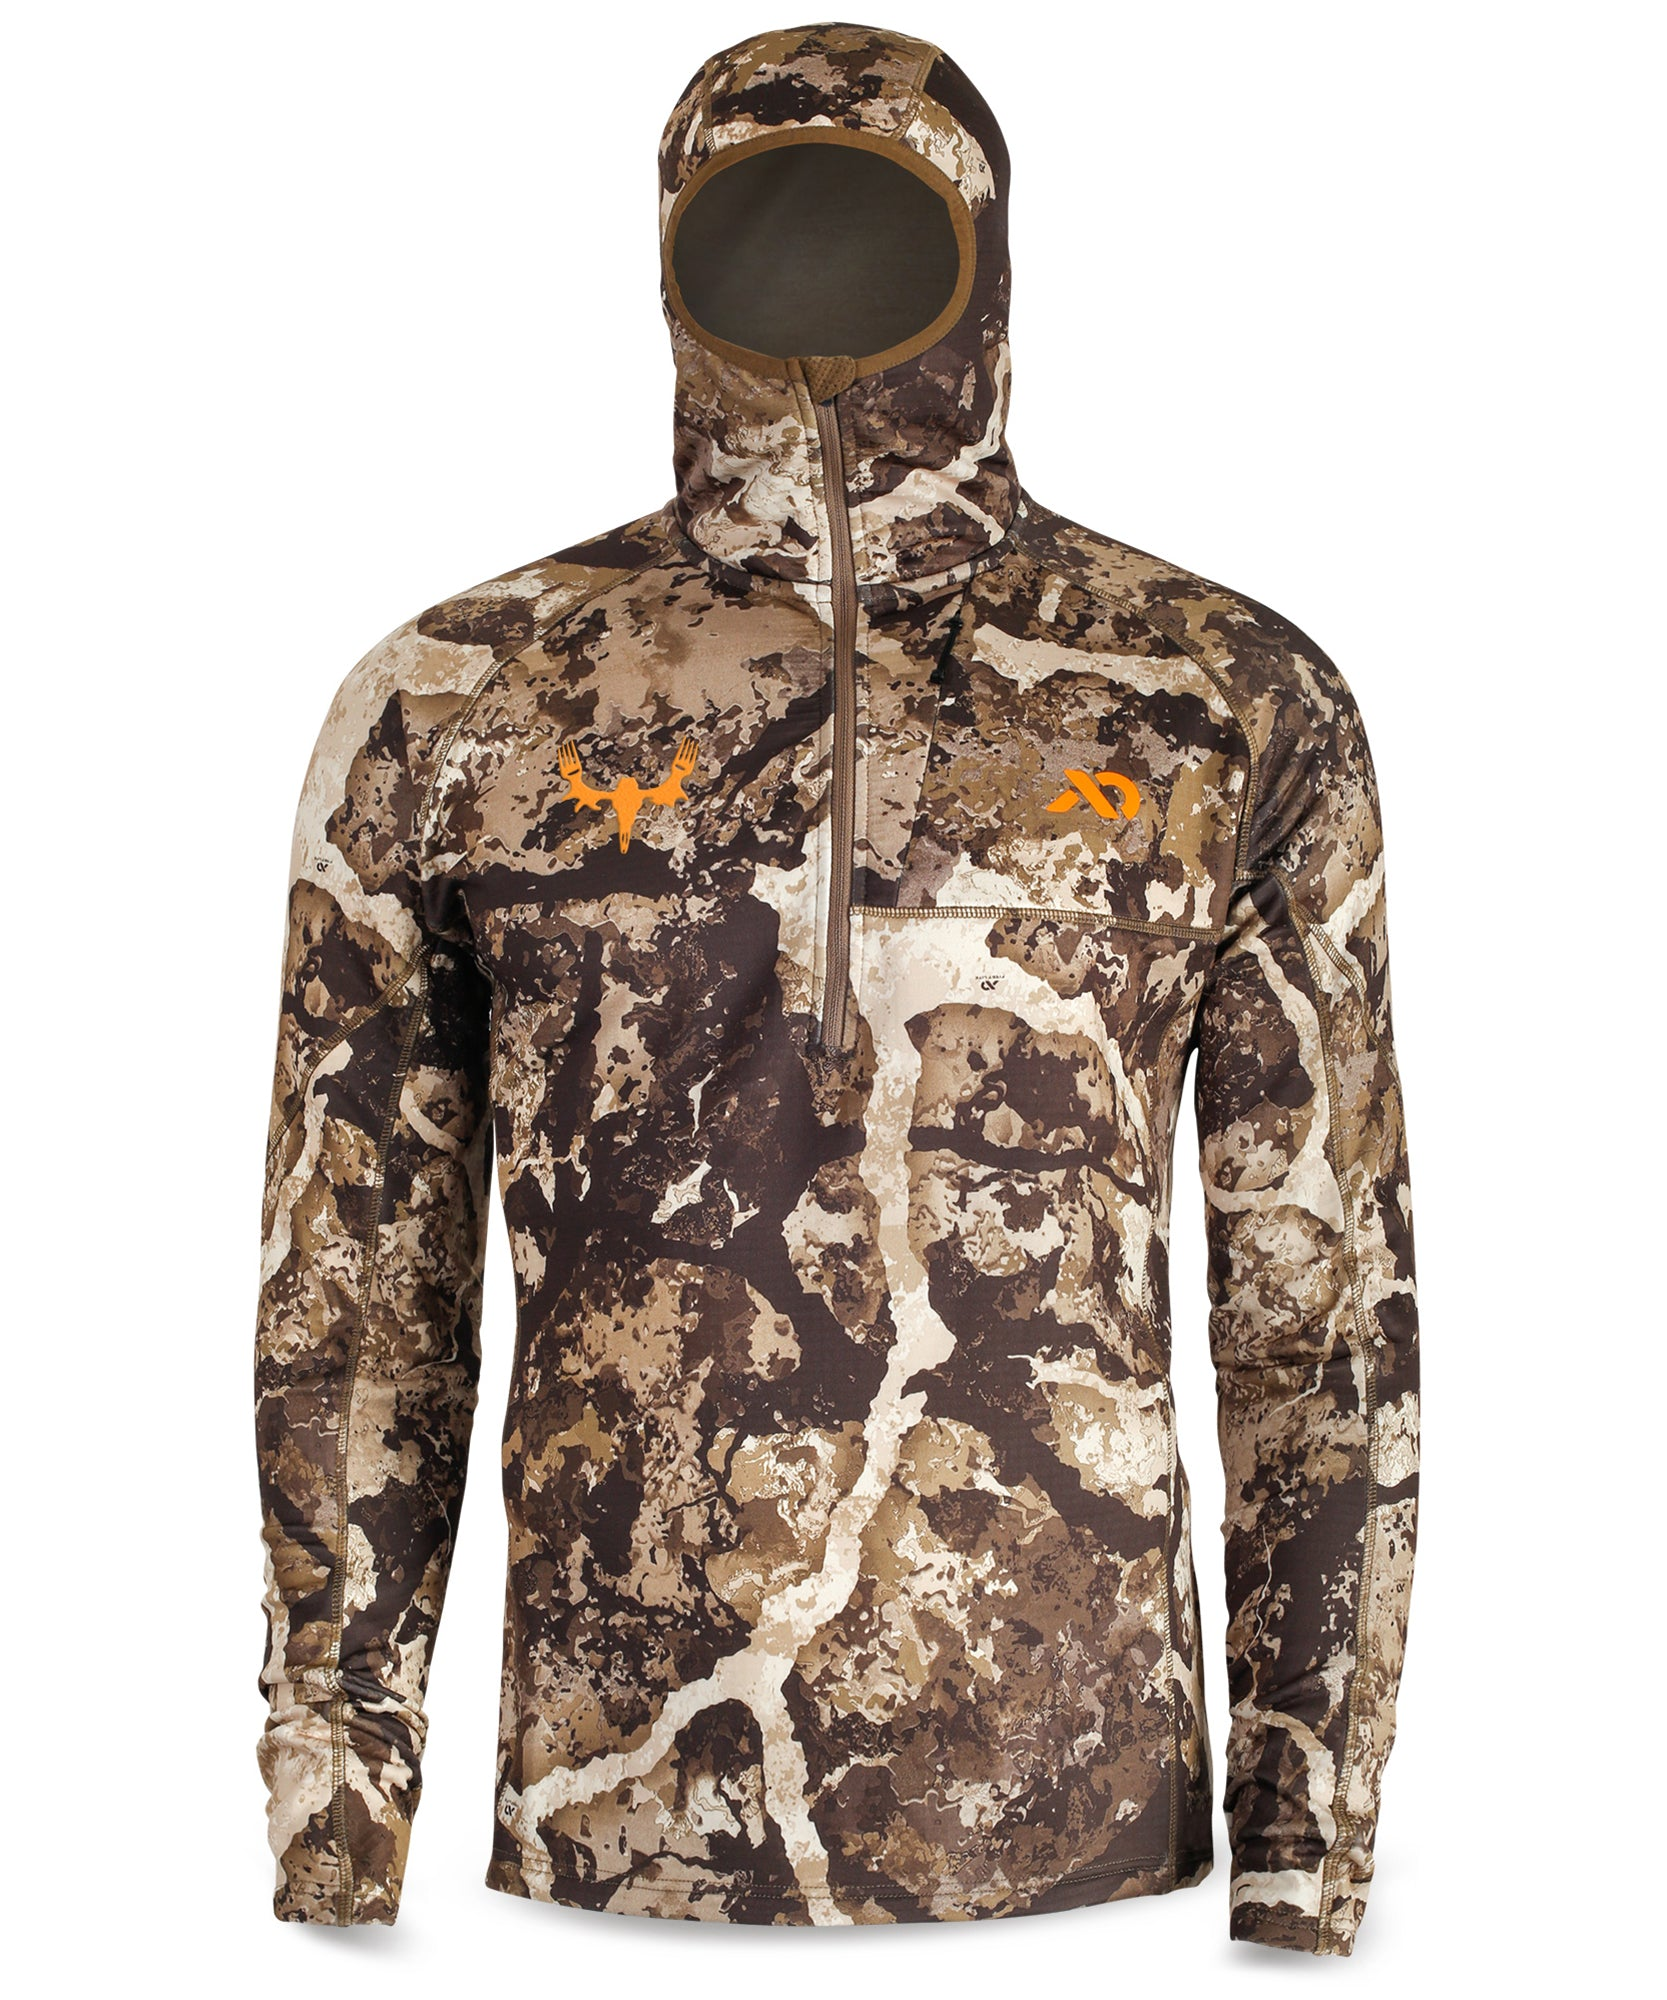 Men's Klamath Hoody with MeatEater logo